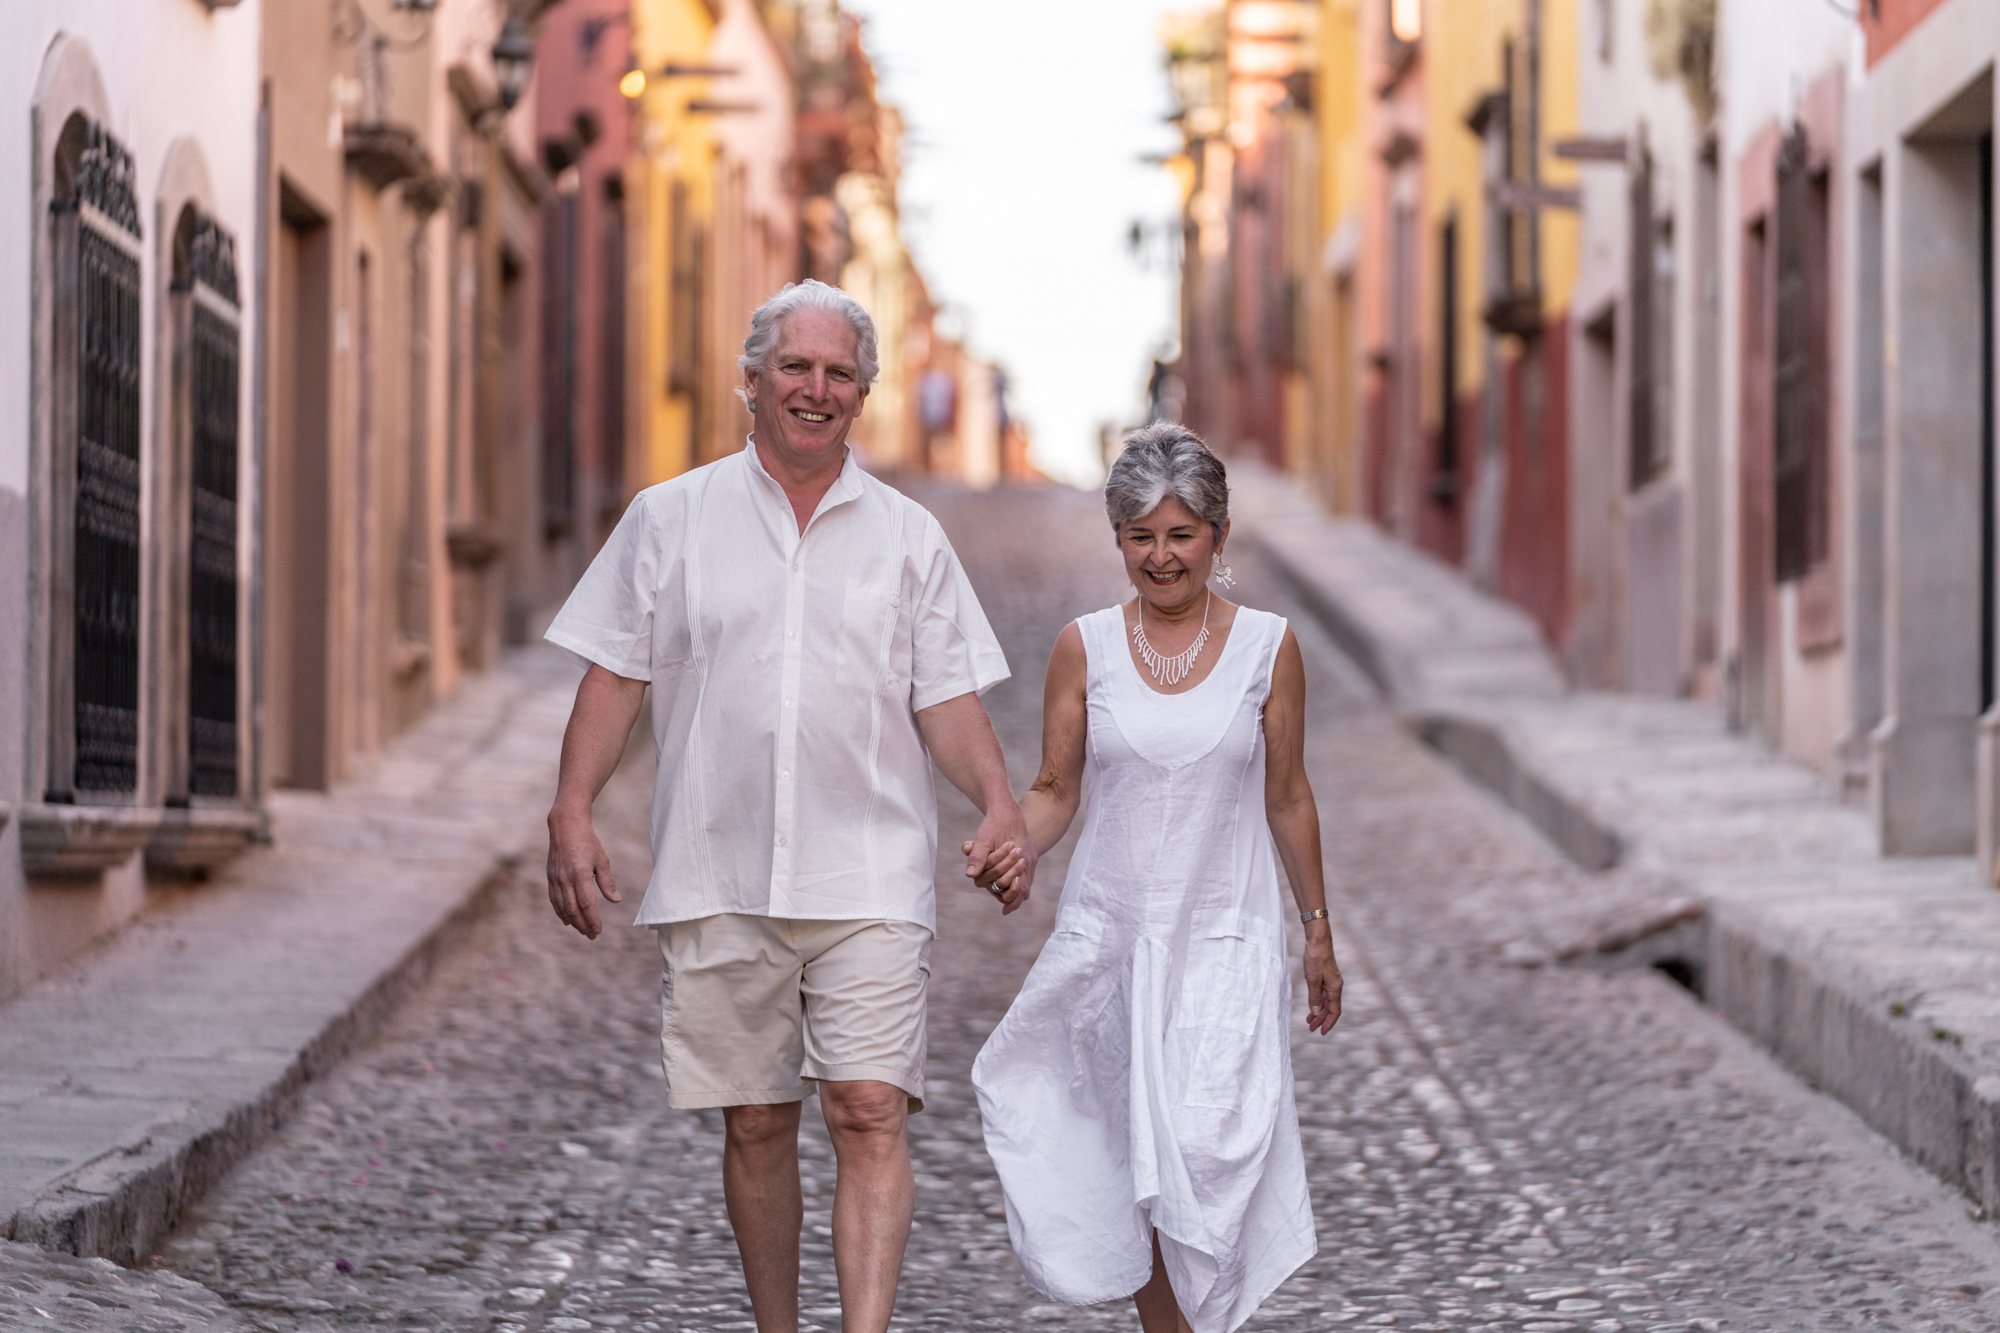 Photoshoot session in San Miguel de Allende with Suzanne and Leo-21.jpg